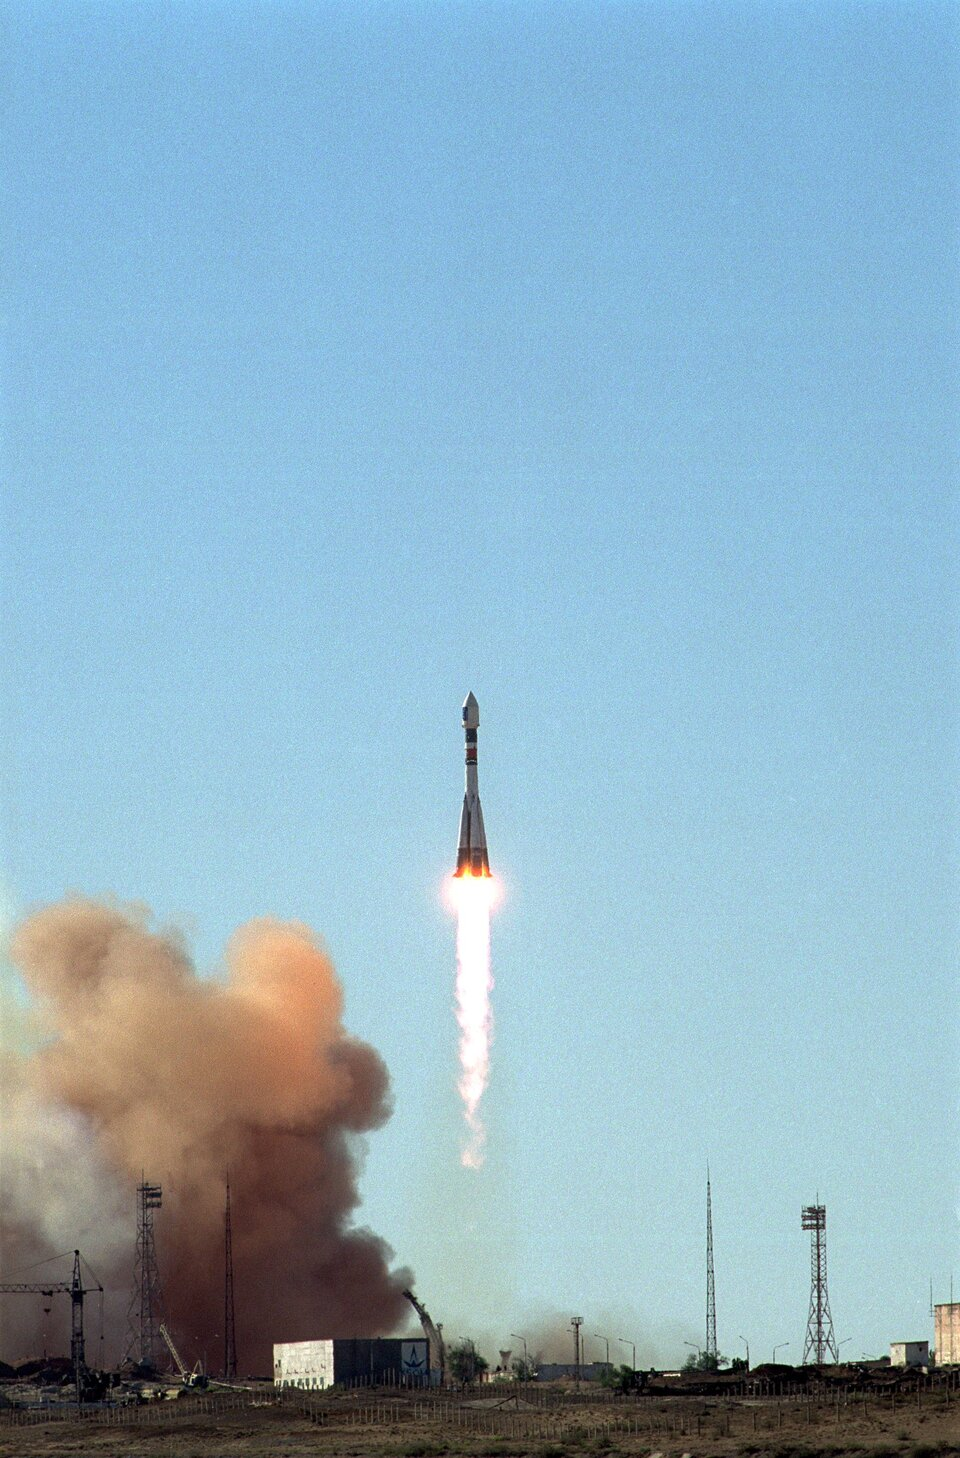 First Cluster duo launch 16 April 2000